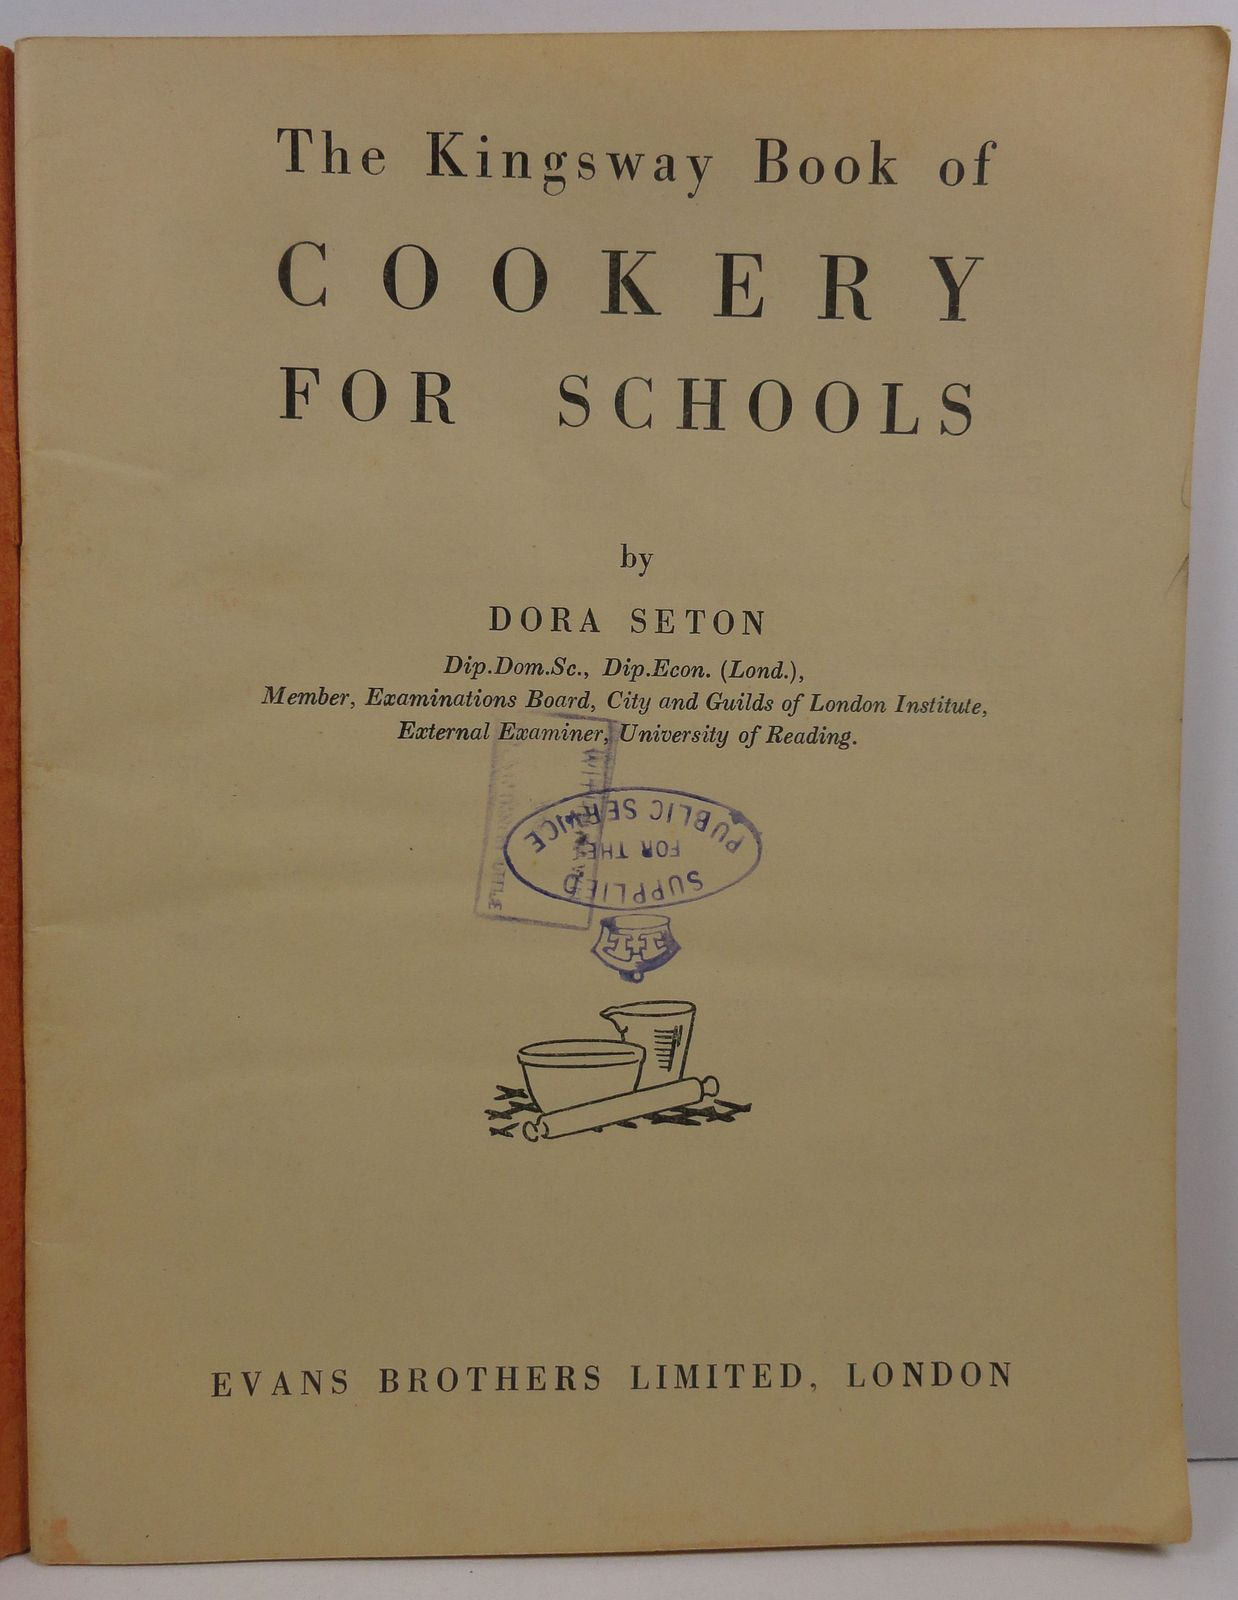 The Kingsway Book of Cookery for Schools by Dora Seton